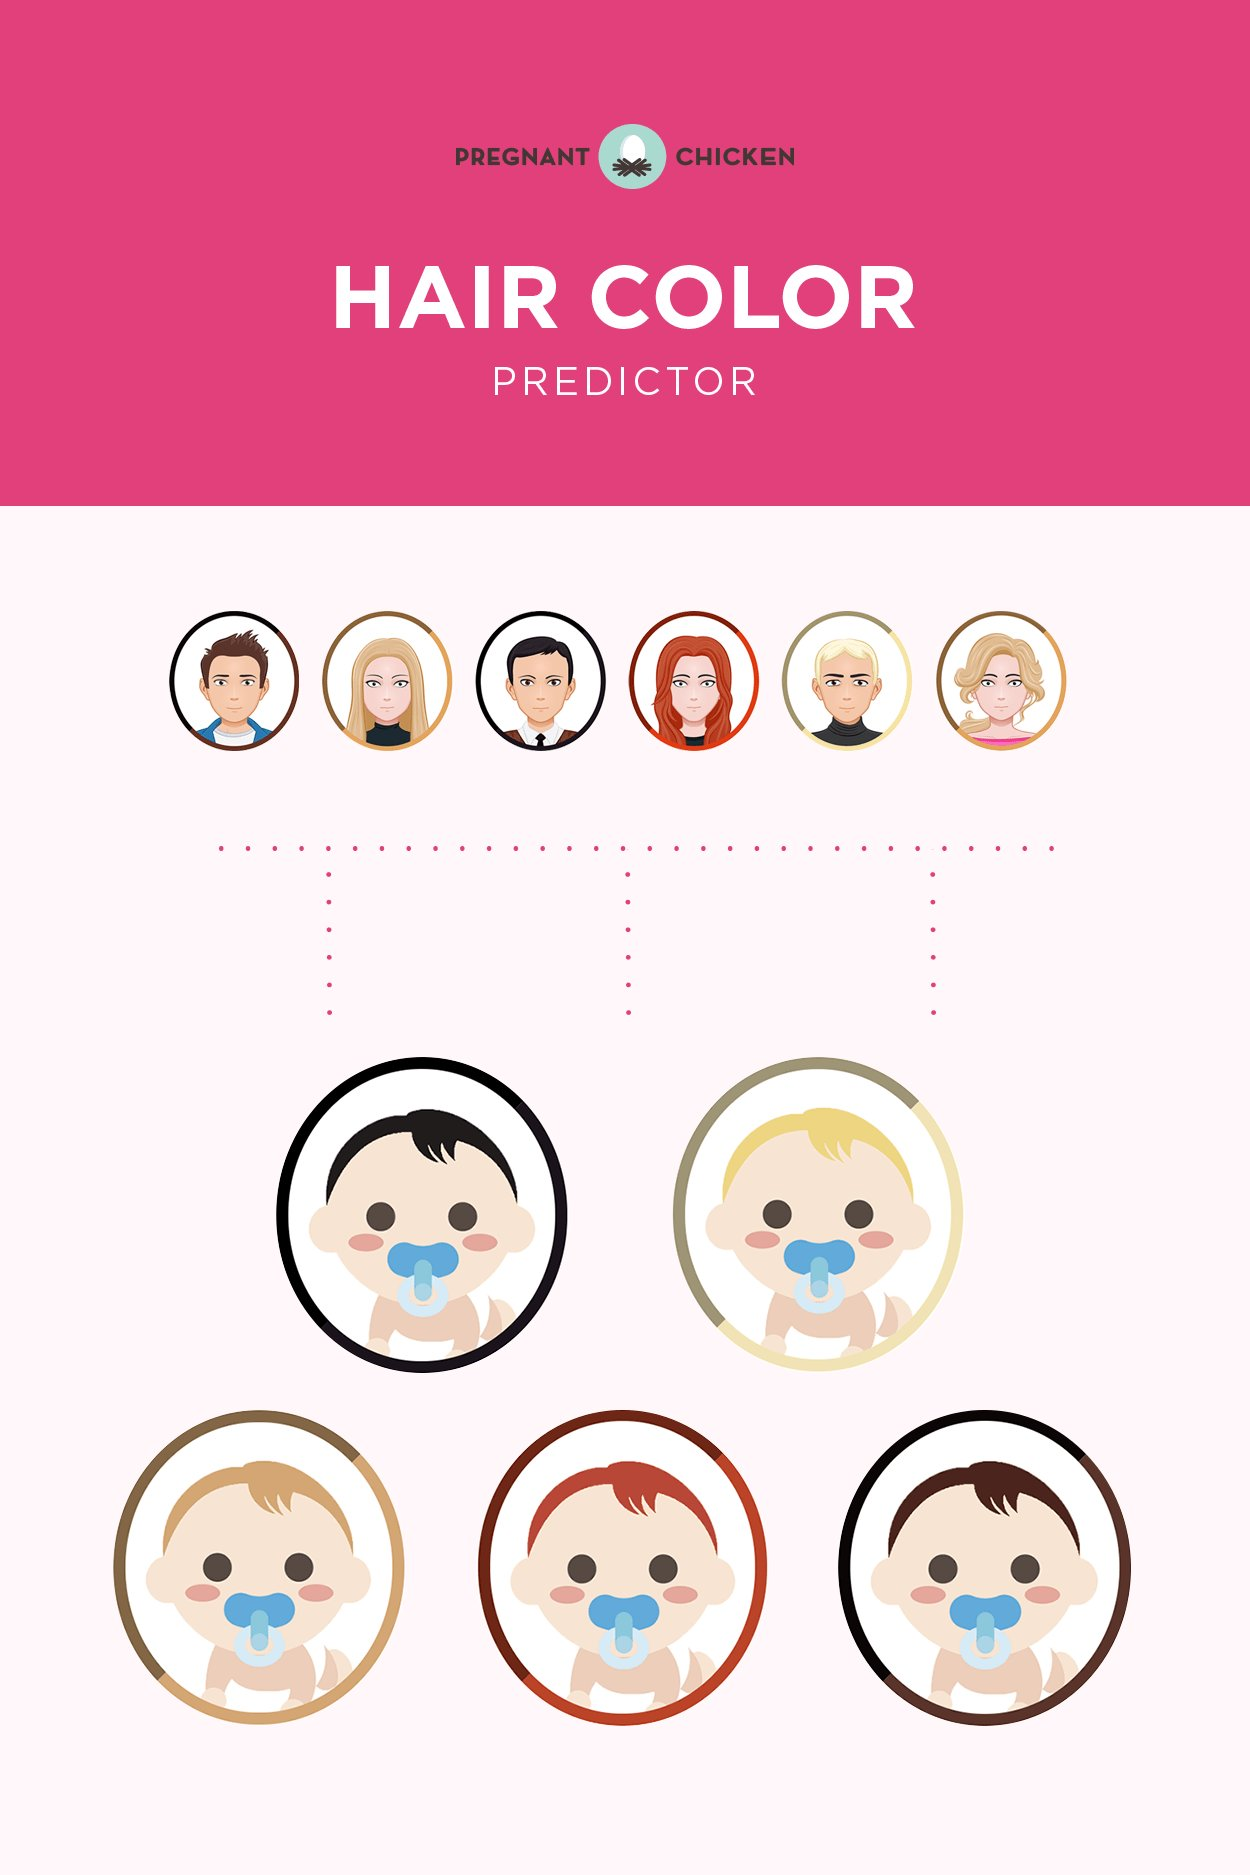 The Best What Color Hair Will My Baby Have Baby Hair Color Predictor Pictures